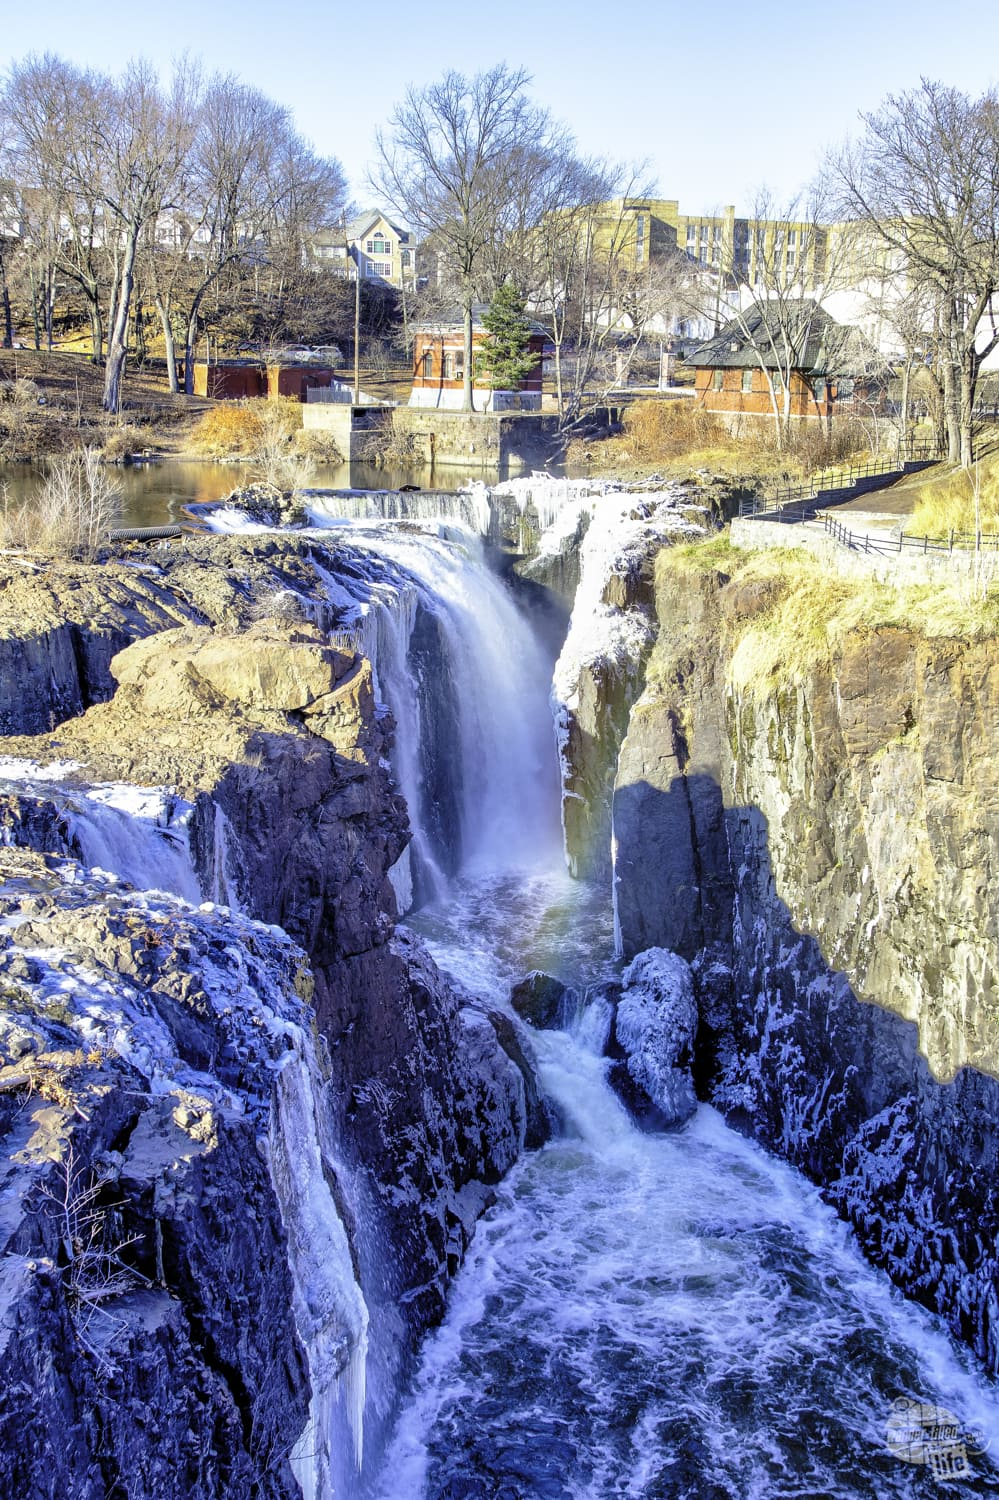 Great Falls in Paterson, NJ